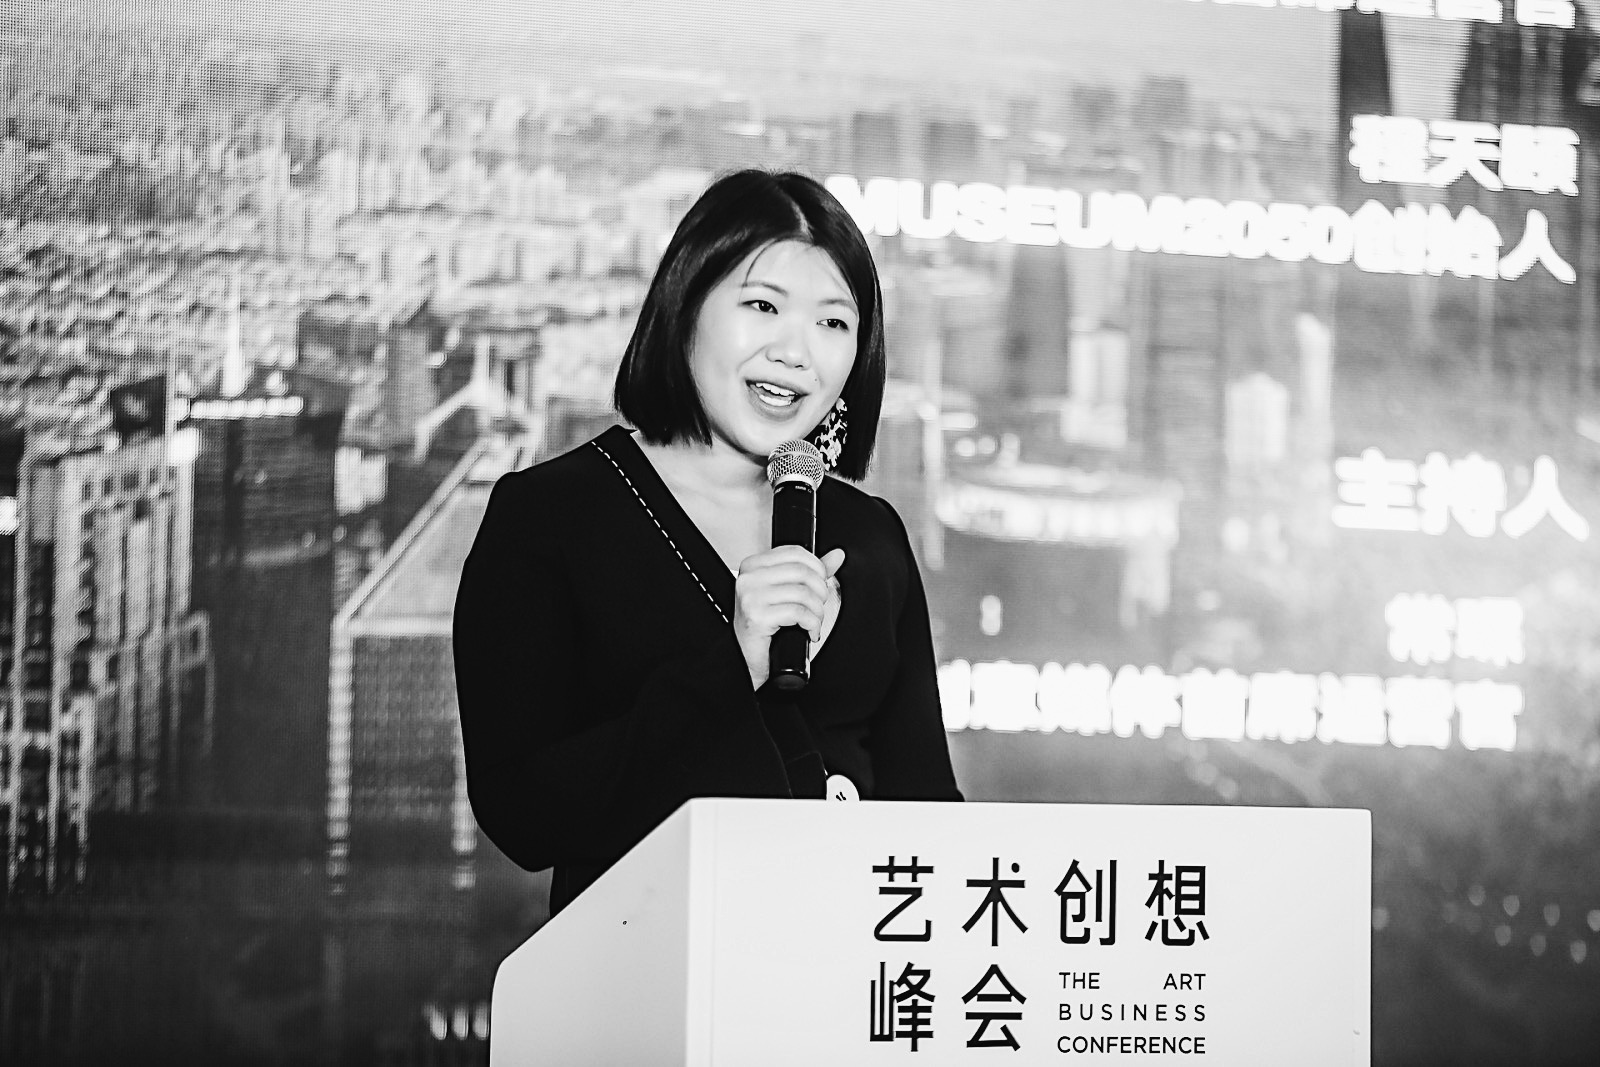 Nicole Ching Speaking at The Art Business Conference Shanghai